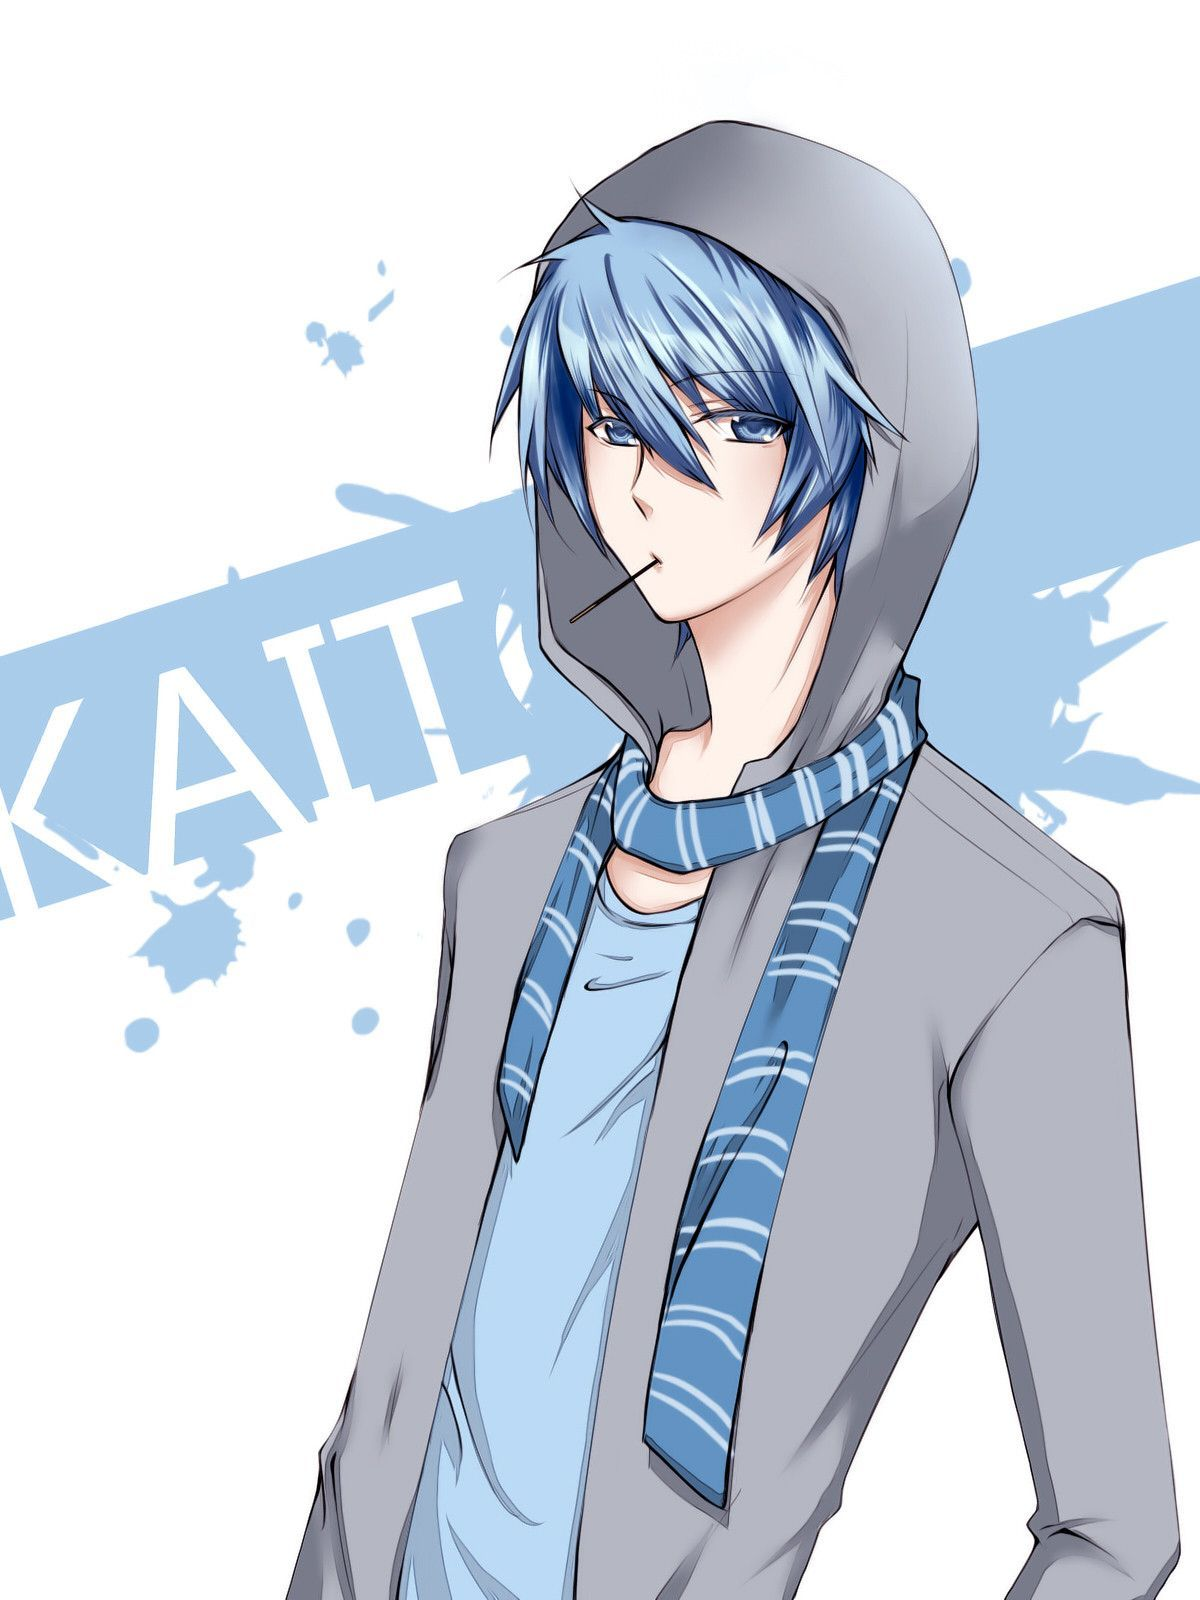 Cool Wallpaper Anime Boy Mywallpapers Site In 2020 Vocaloid Kaito Kaito Shion Vocaloid